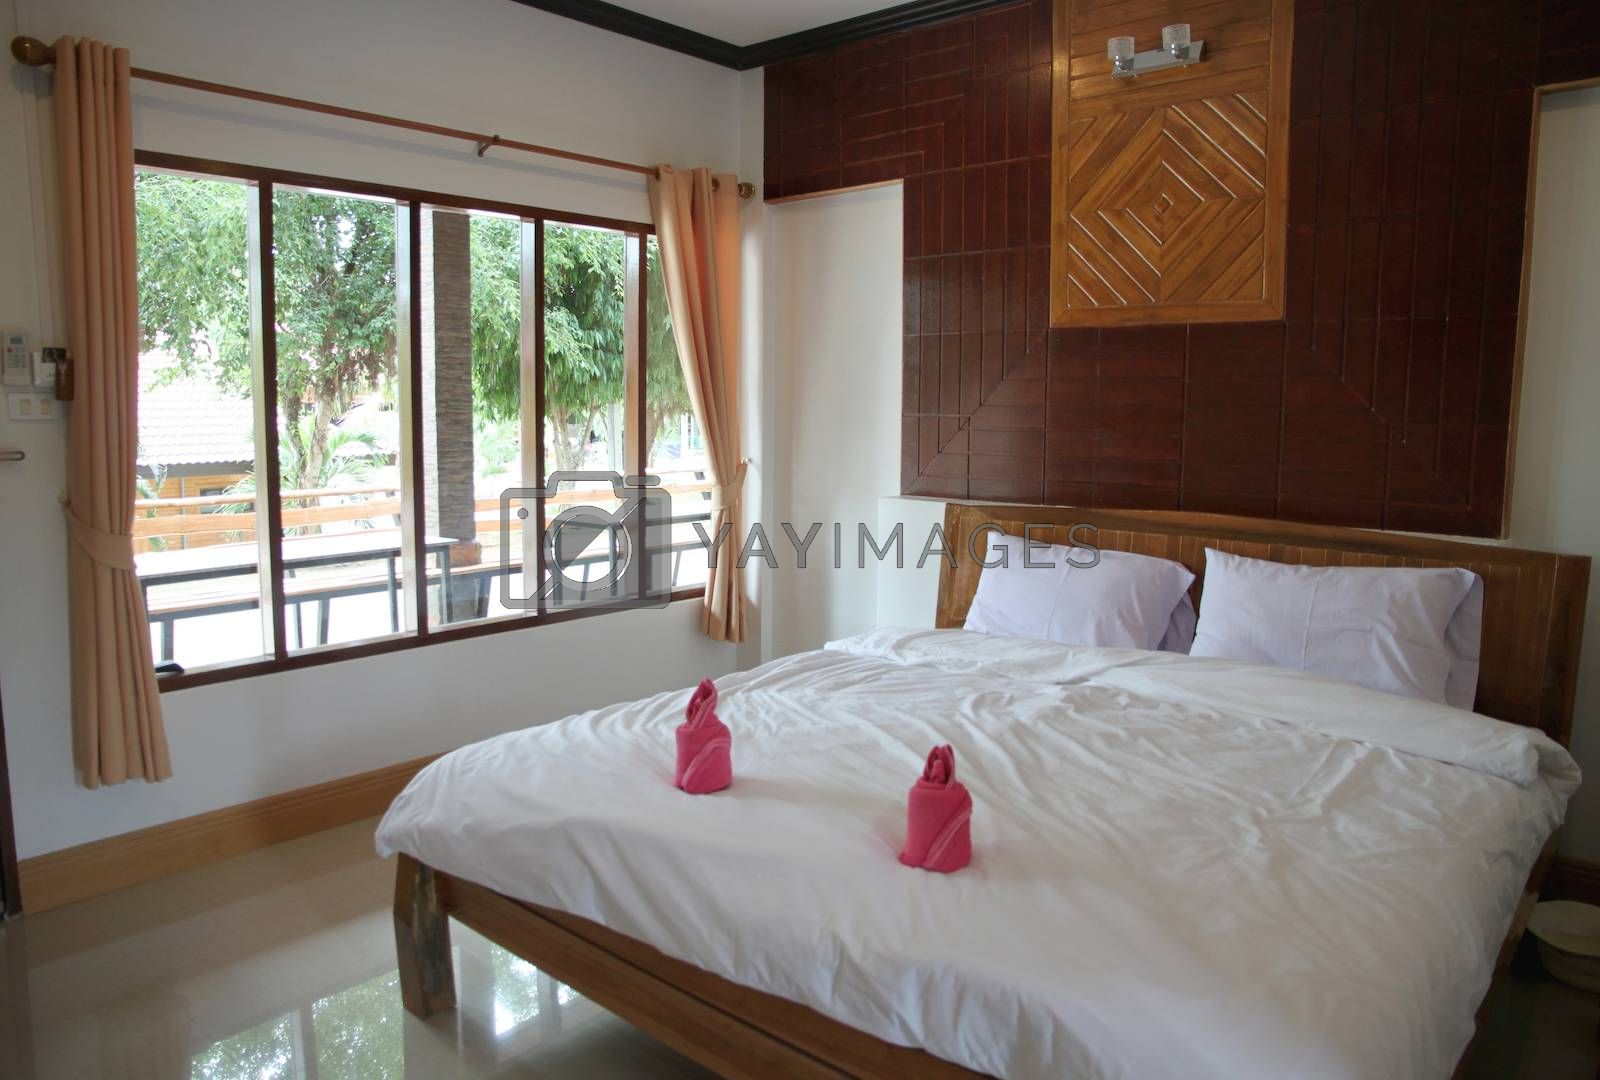 wooden bedroom have a white bedding.